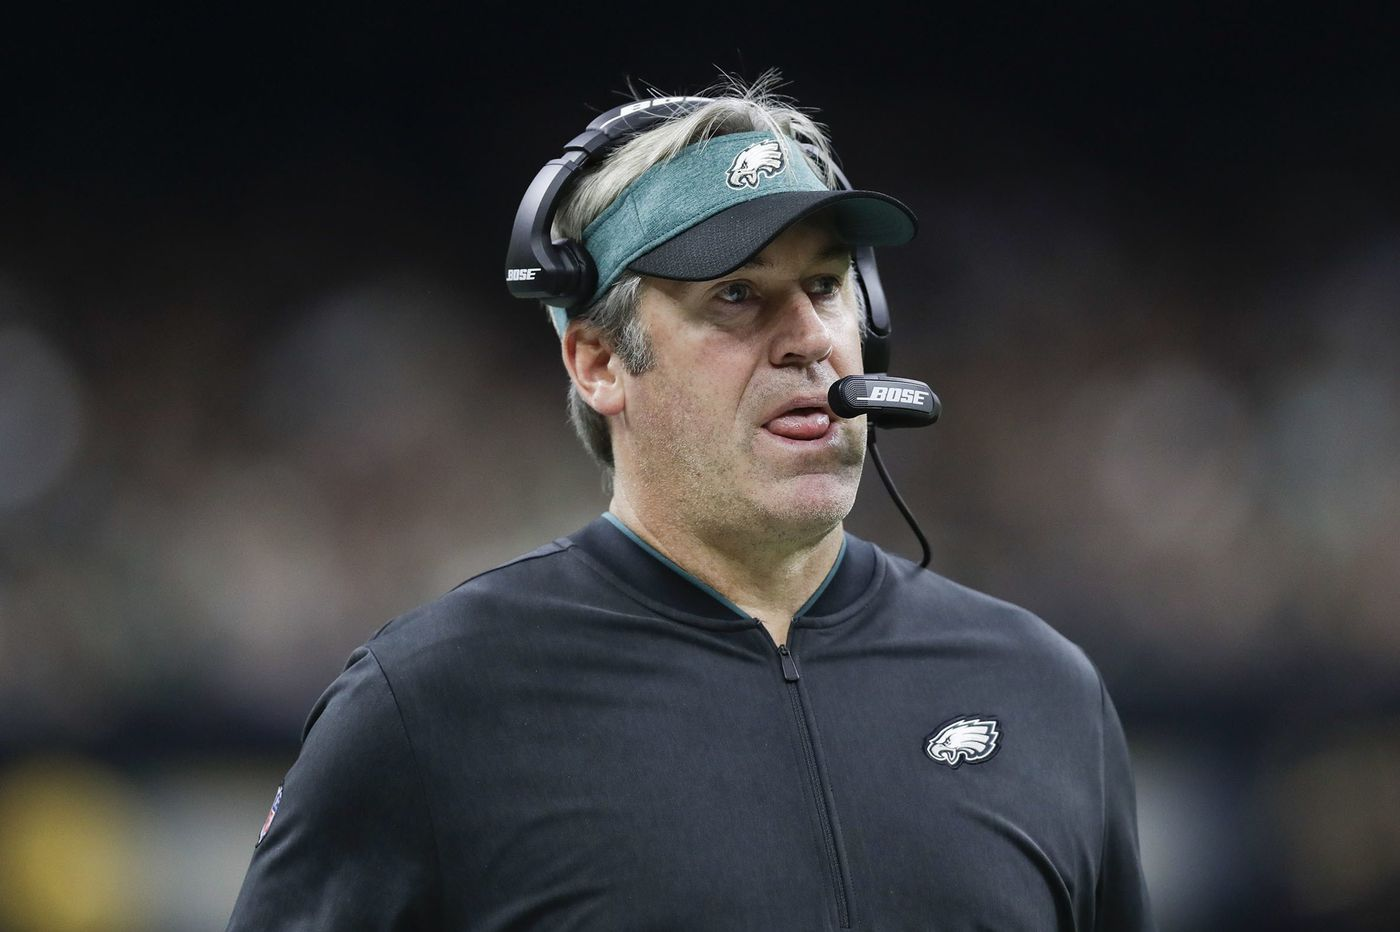 The Eagles' hard road following blowout loss to Saints in November helped shape the path to a playoff rematch | Bob Ford